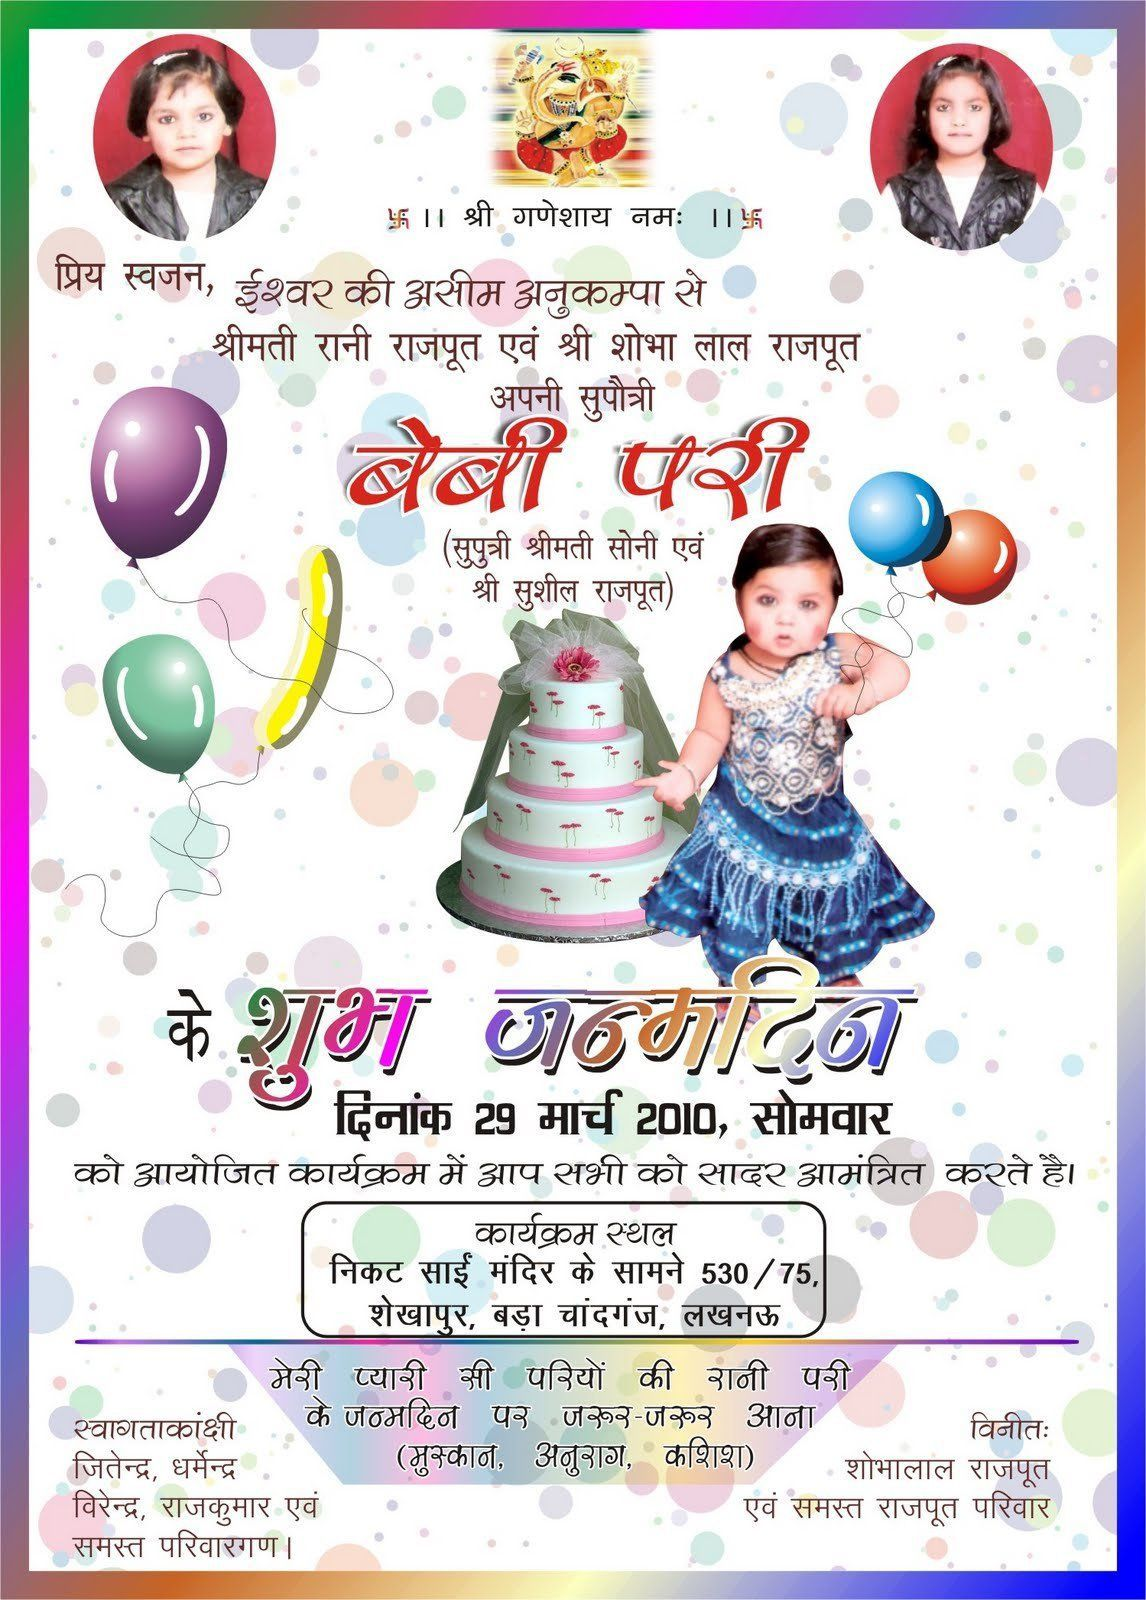 006 Astounding Free Online Birthday Invitation Card Maker With Name And Photo High Definition Full